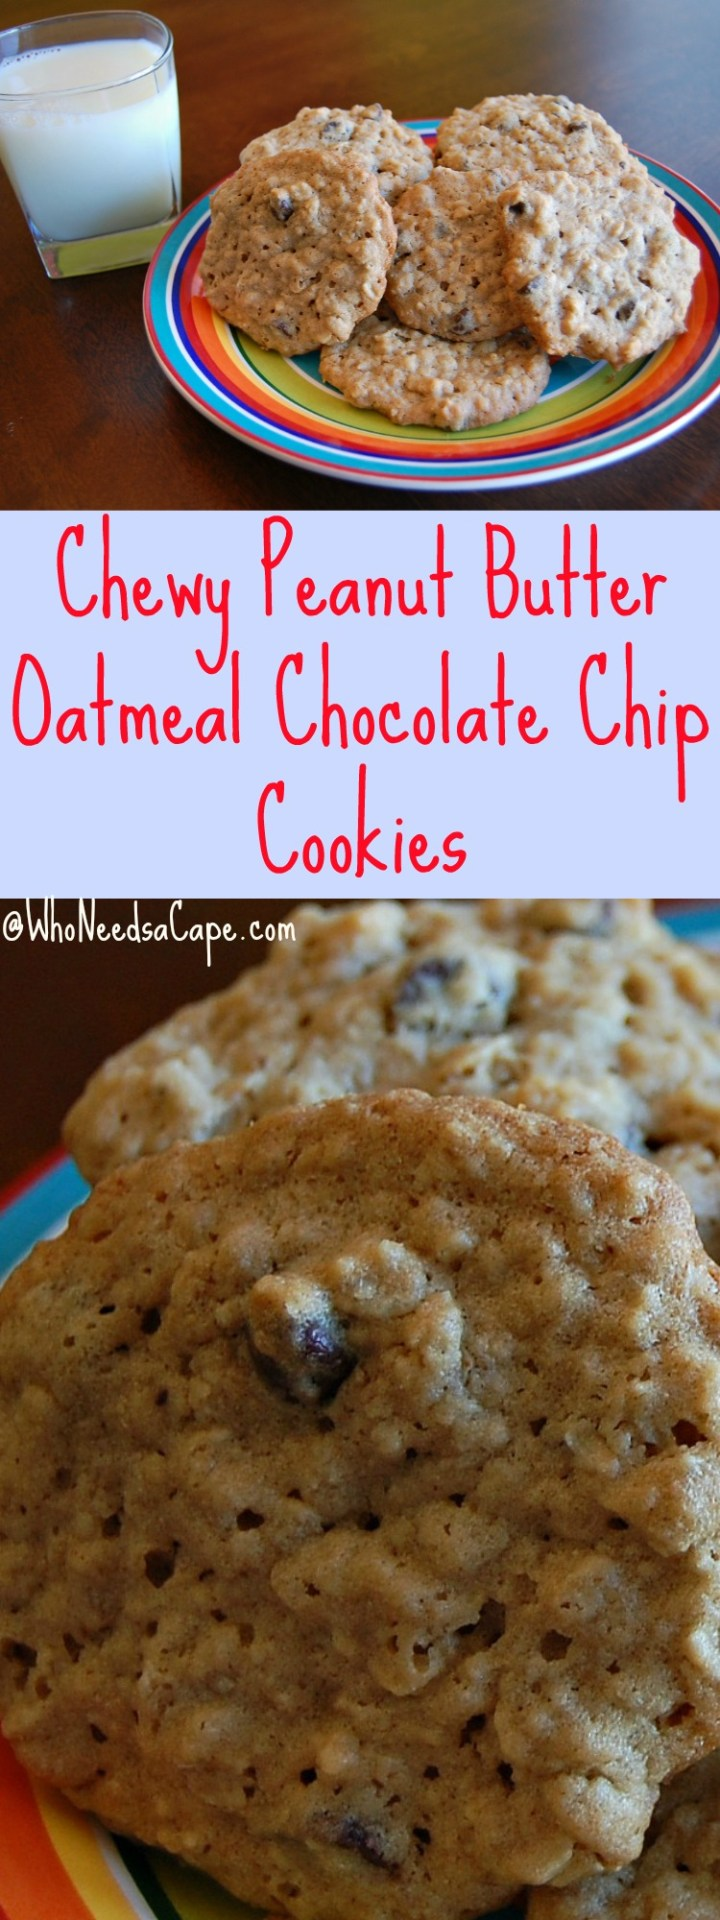 Chewy Peanut Butter Oatmeal Chocolate Chip Cookies will satisfy the cookie monsters in your house! So easy but so delicious - a must pin!